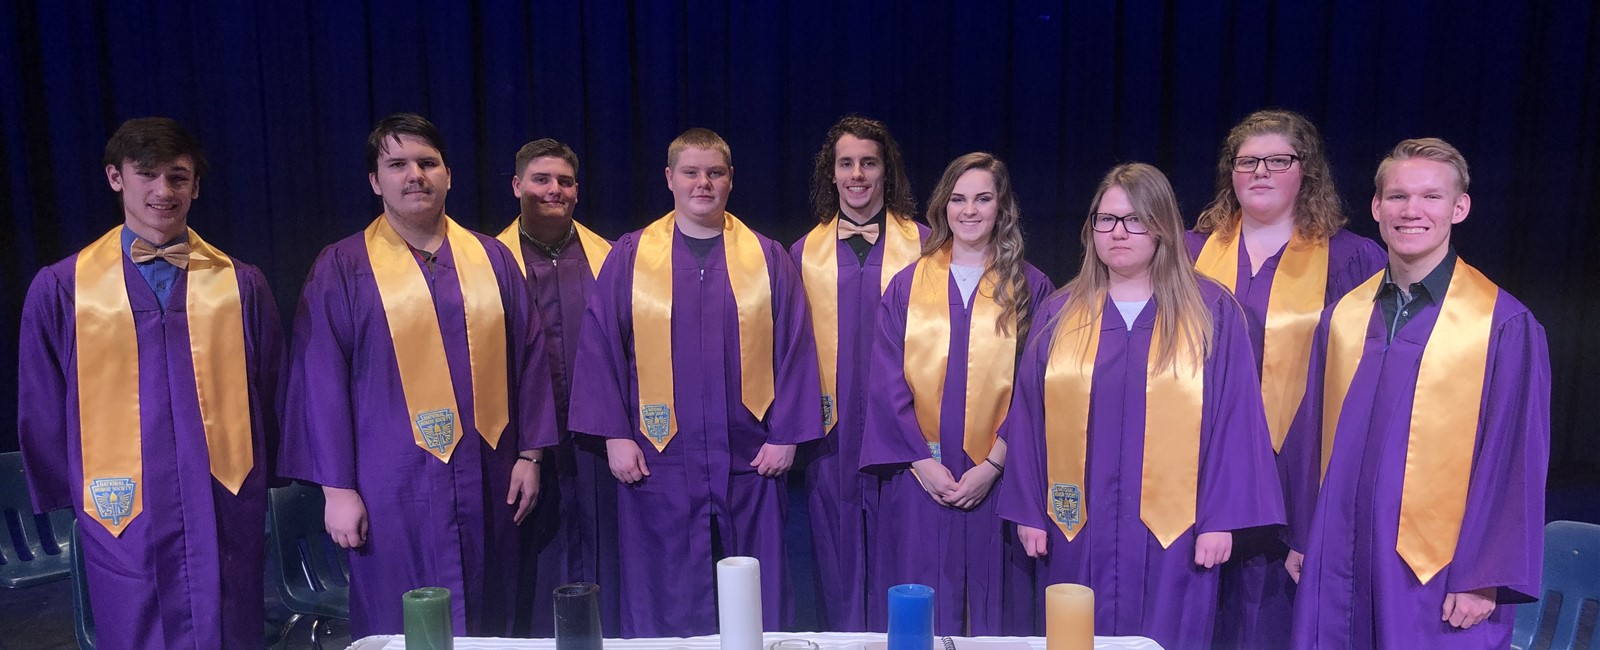 Sebring McKinley High School's nine newest members of the National Honor Society: Jacob Hunter, Miles Shoffner, Noah Dennis, Camden Green, Zane Peterson, Hannah Warner, Chasity Smarr, Brenna Soules, and Joseph Clark.